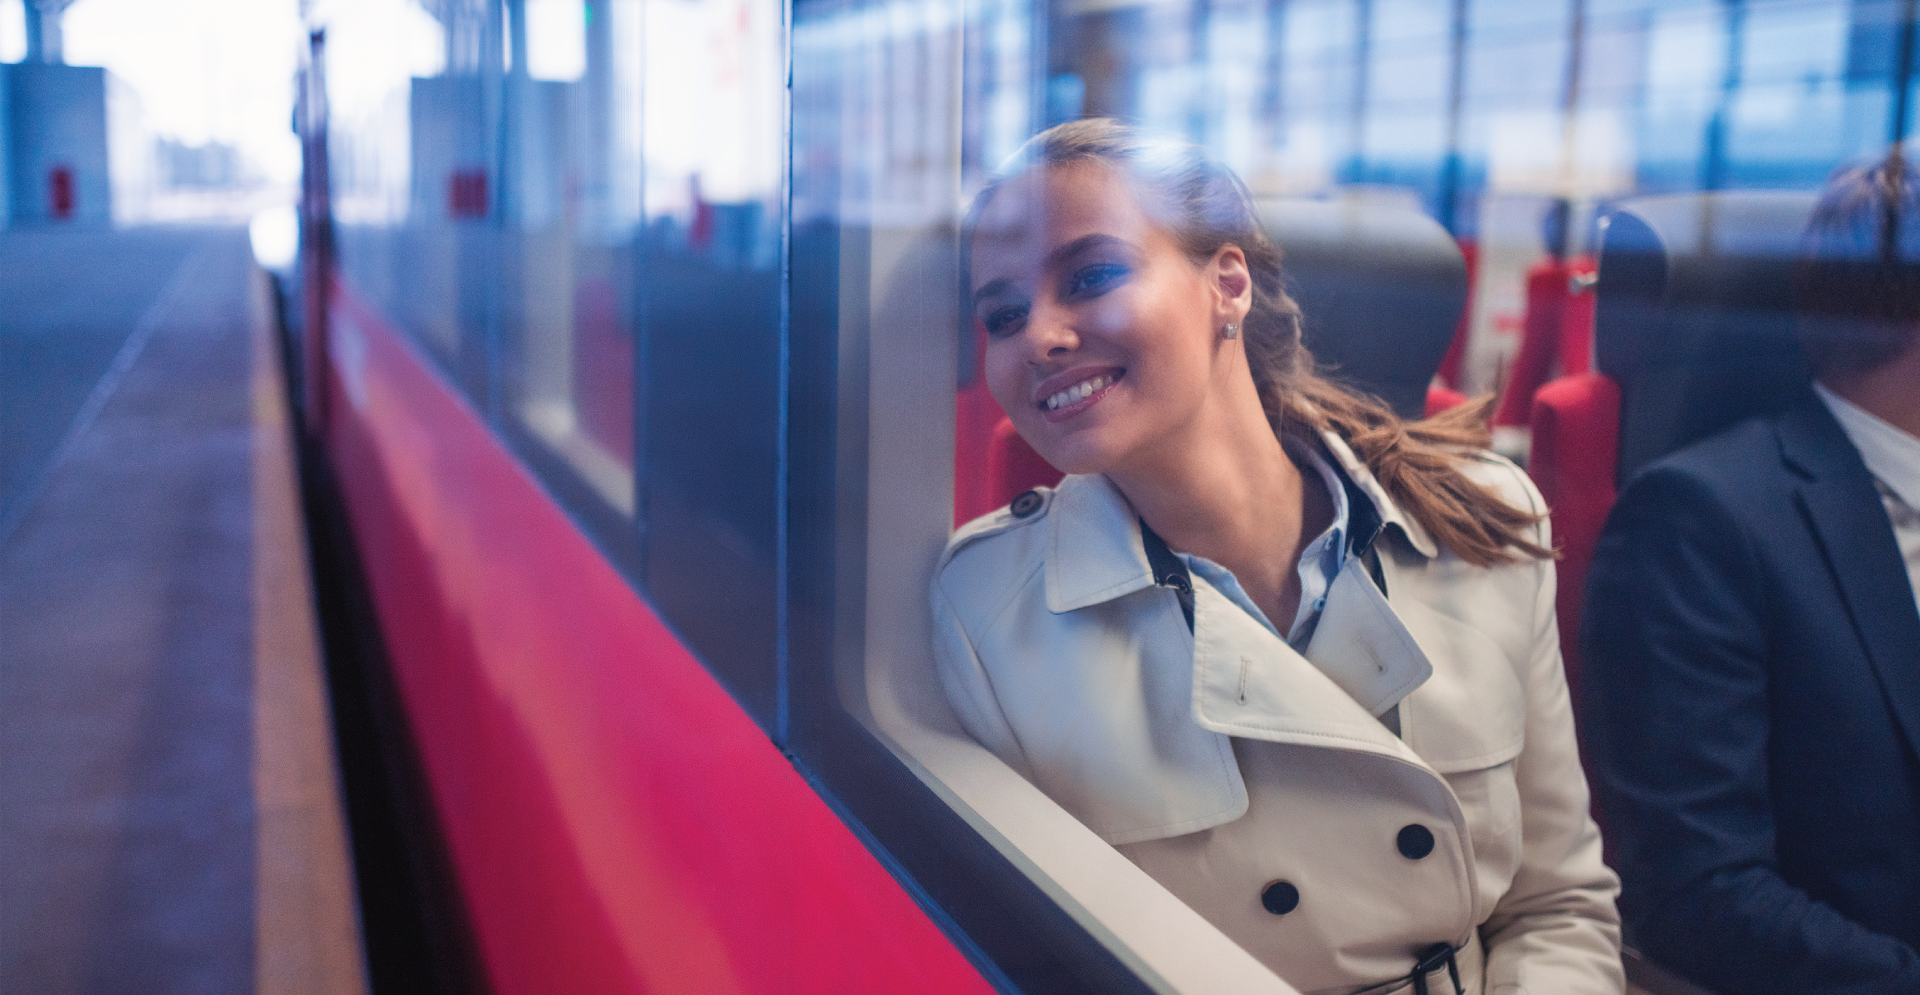 A woman happily looking outside through the window of a train